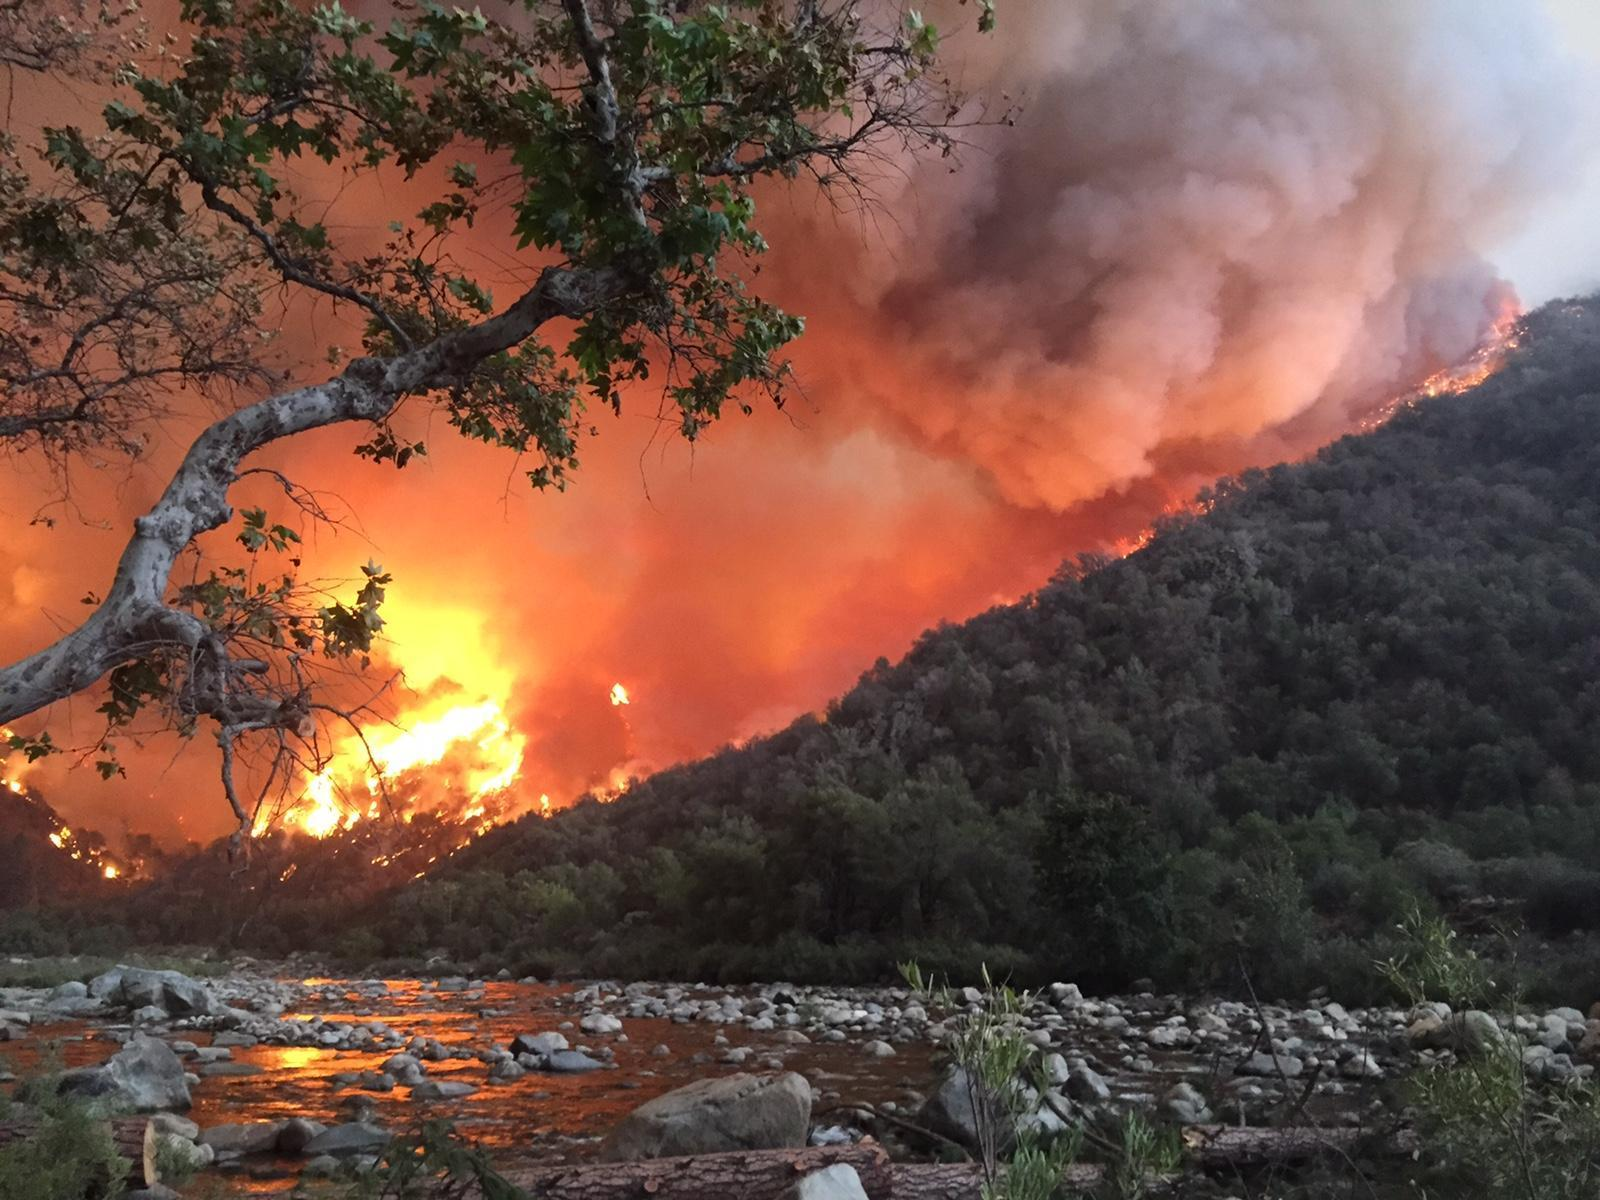 california landscape scorched as wildfires blaze on global warming